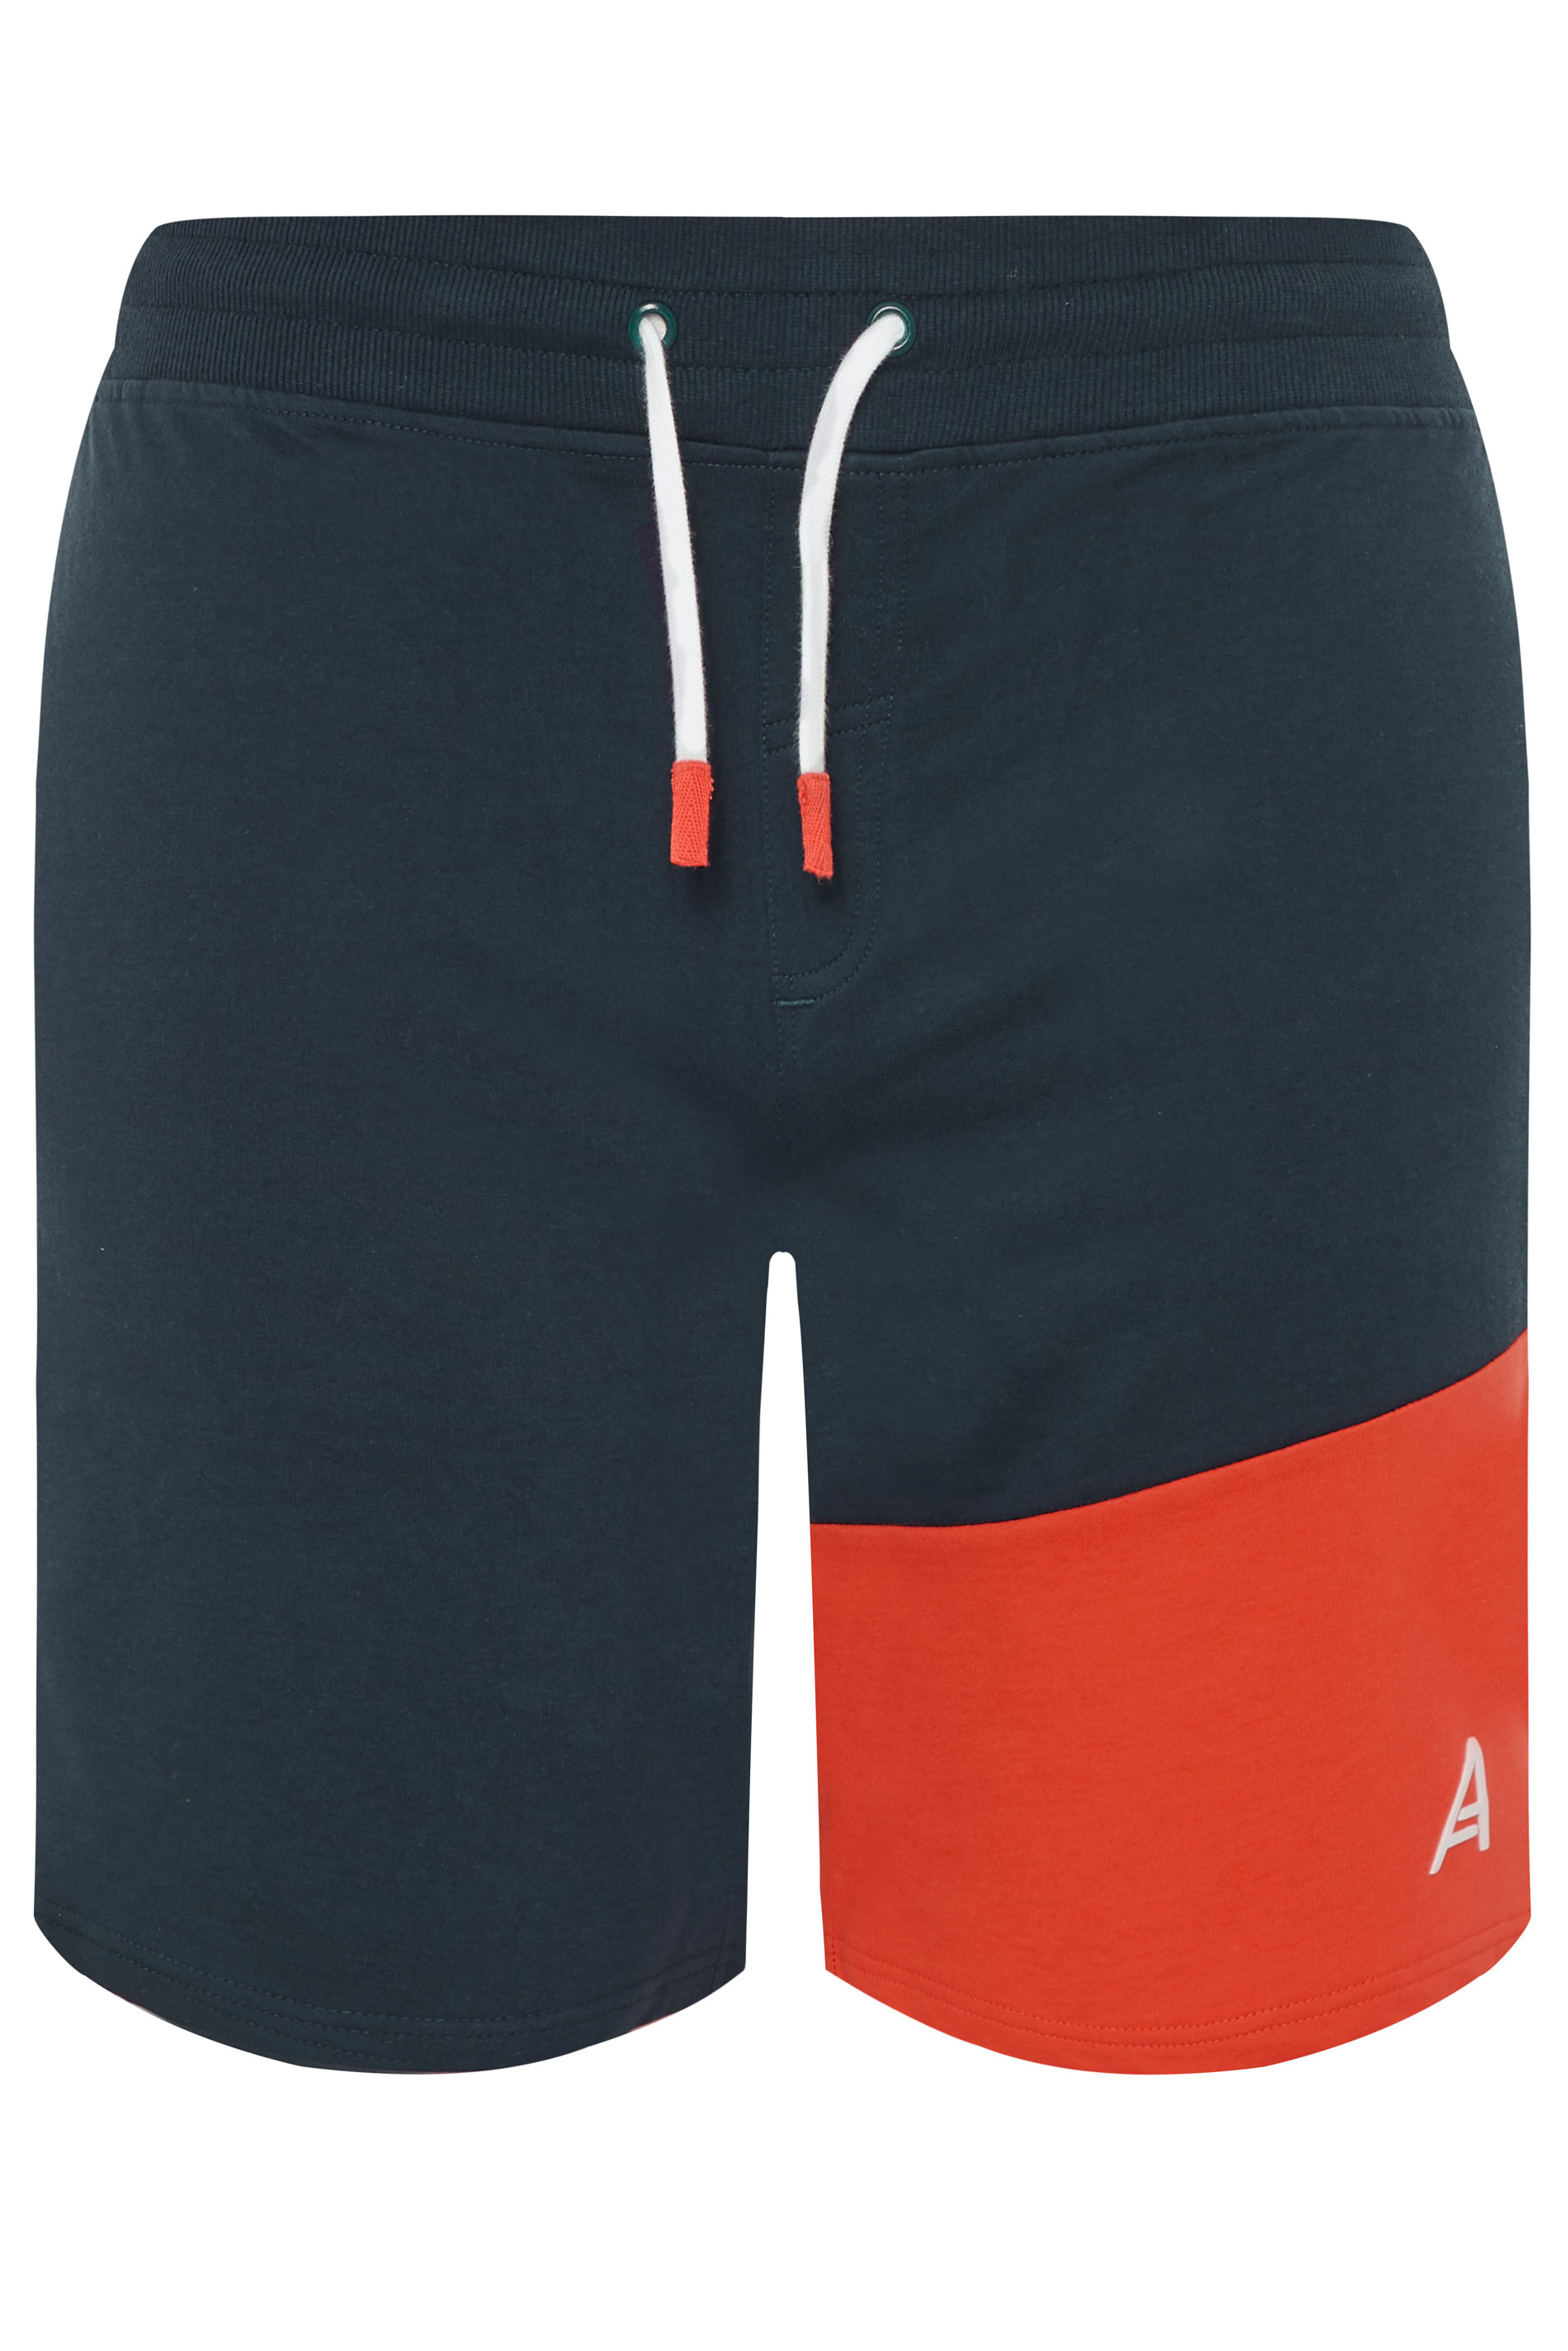 STUDIO A Navy & Red Colour Block Shorts